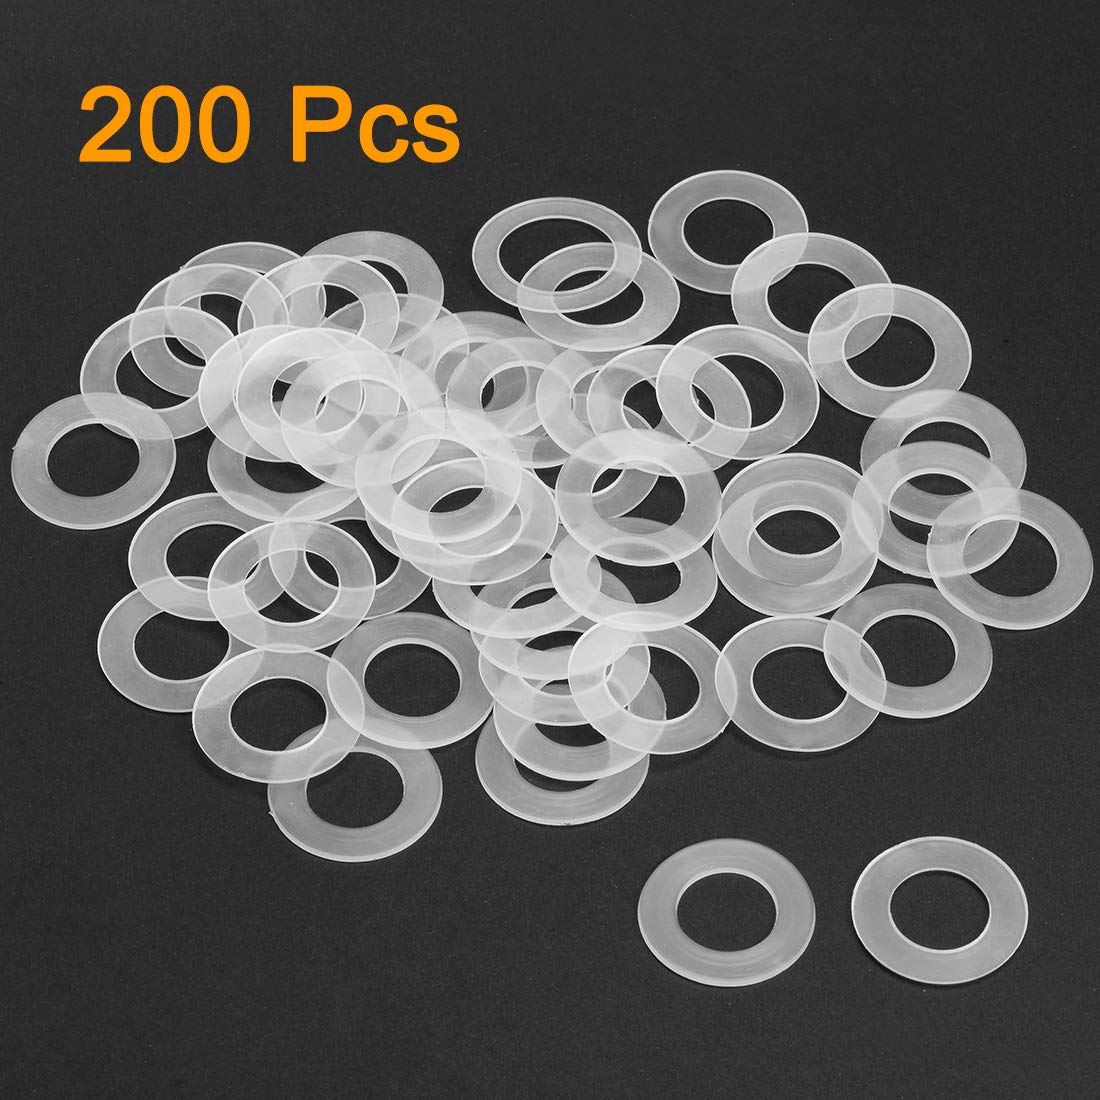 uxcell Nylon Flat Washers for M6 Screw Bolt 18mm OD 0.9mm Thick Clear 200PCS